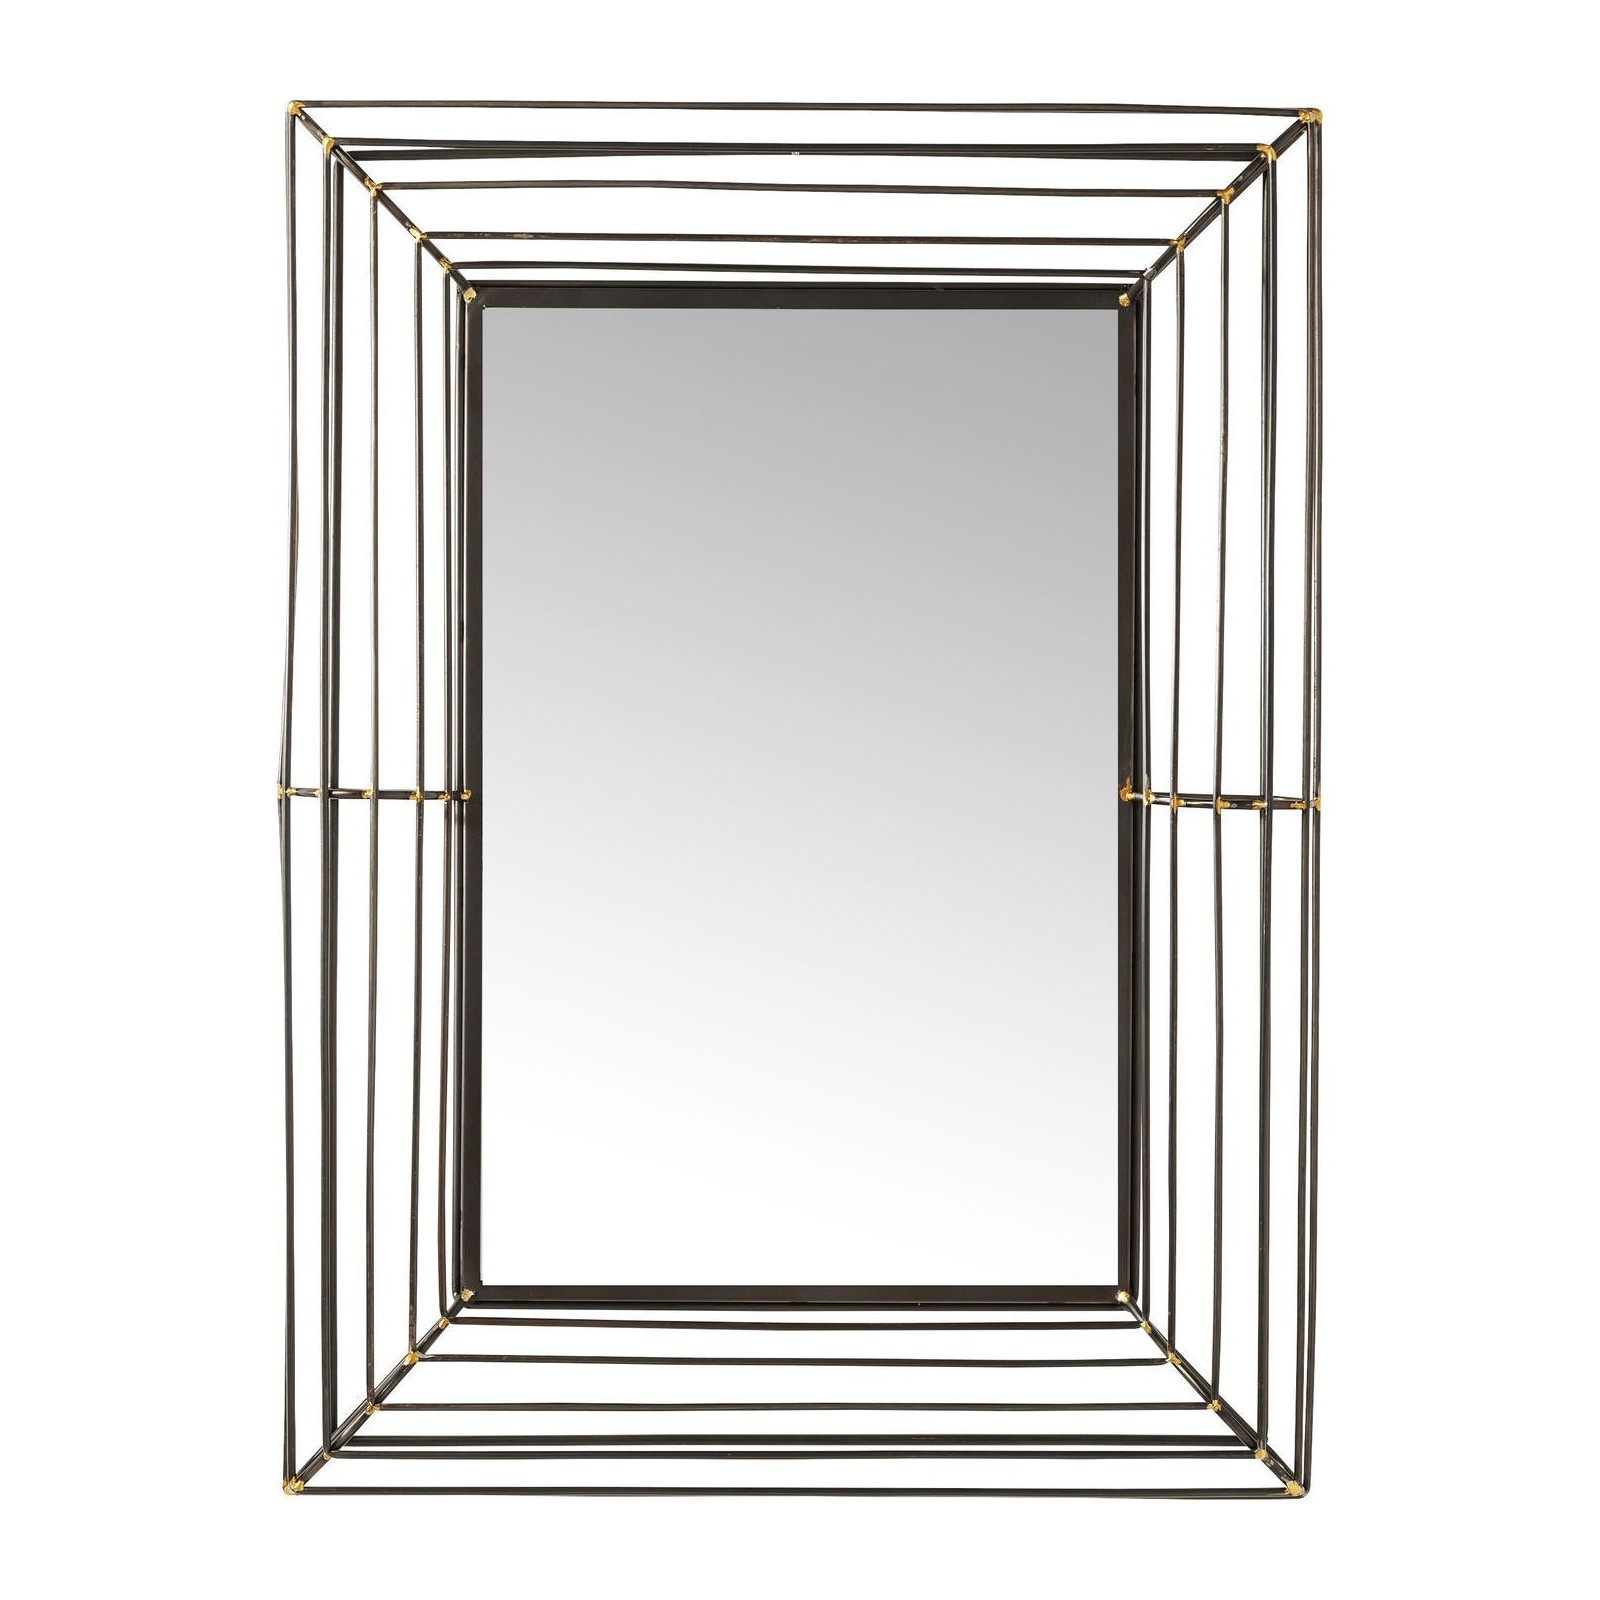 miroir hacienda rectangulaire 95x71cm kare design On miroir design rectangulaire